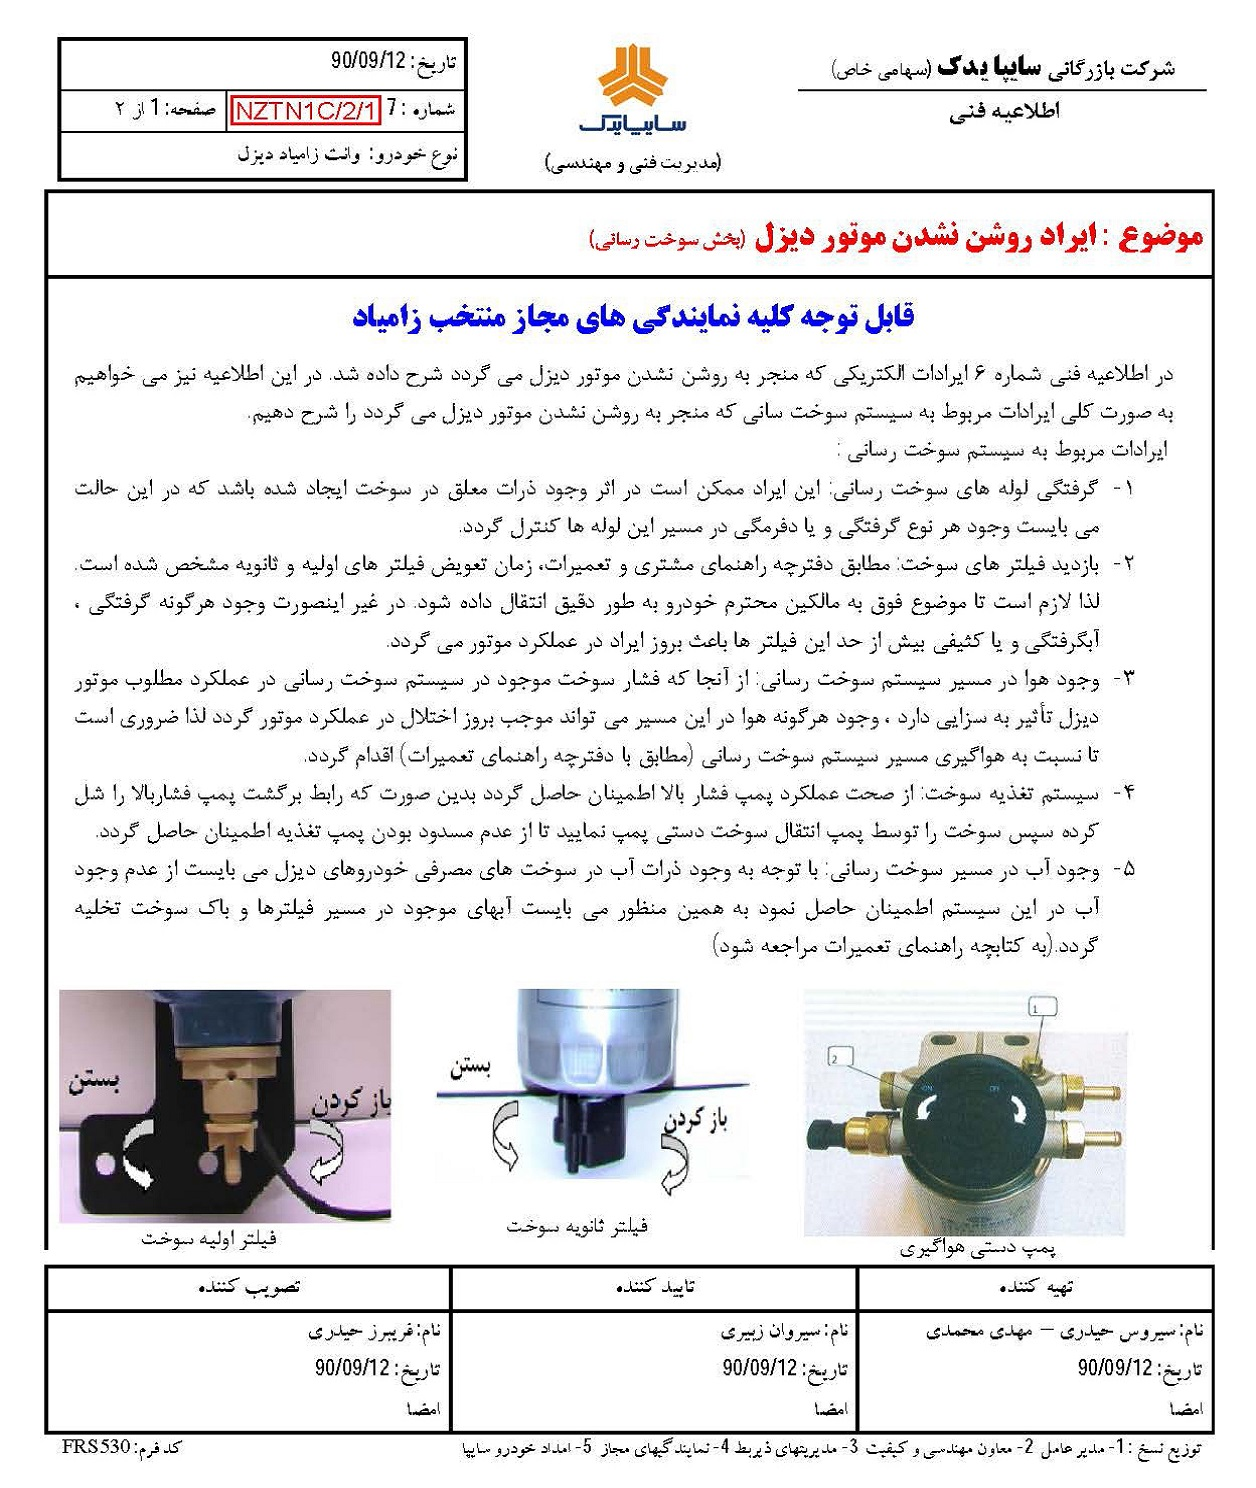 Zamyad Engine Fuel Page 1